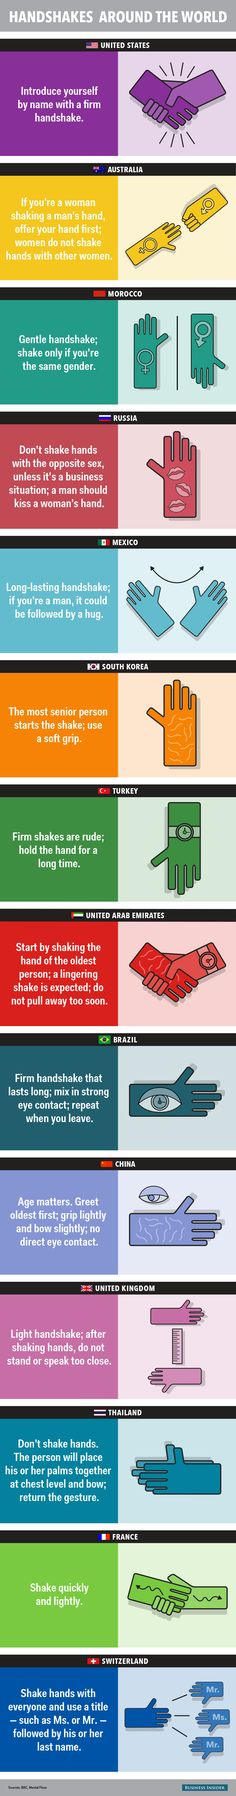 Here's how to properly shake hands in 14 different countries Read more: http://www.businessinsider.com/how-to-properly-shake-hands-around-the-world-2015-3#ixzz3TXN4AOPU #culture #etiquette